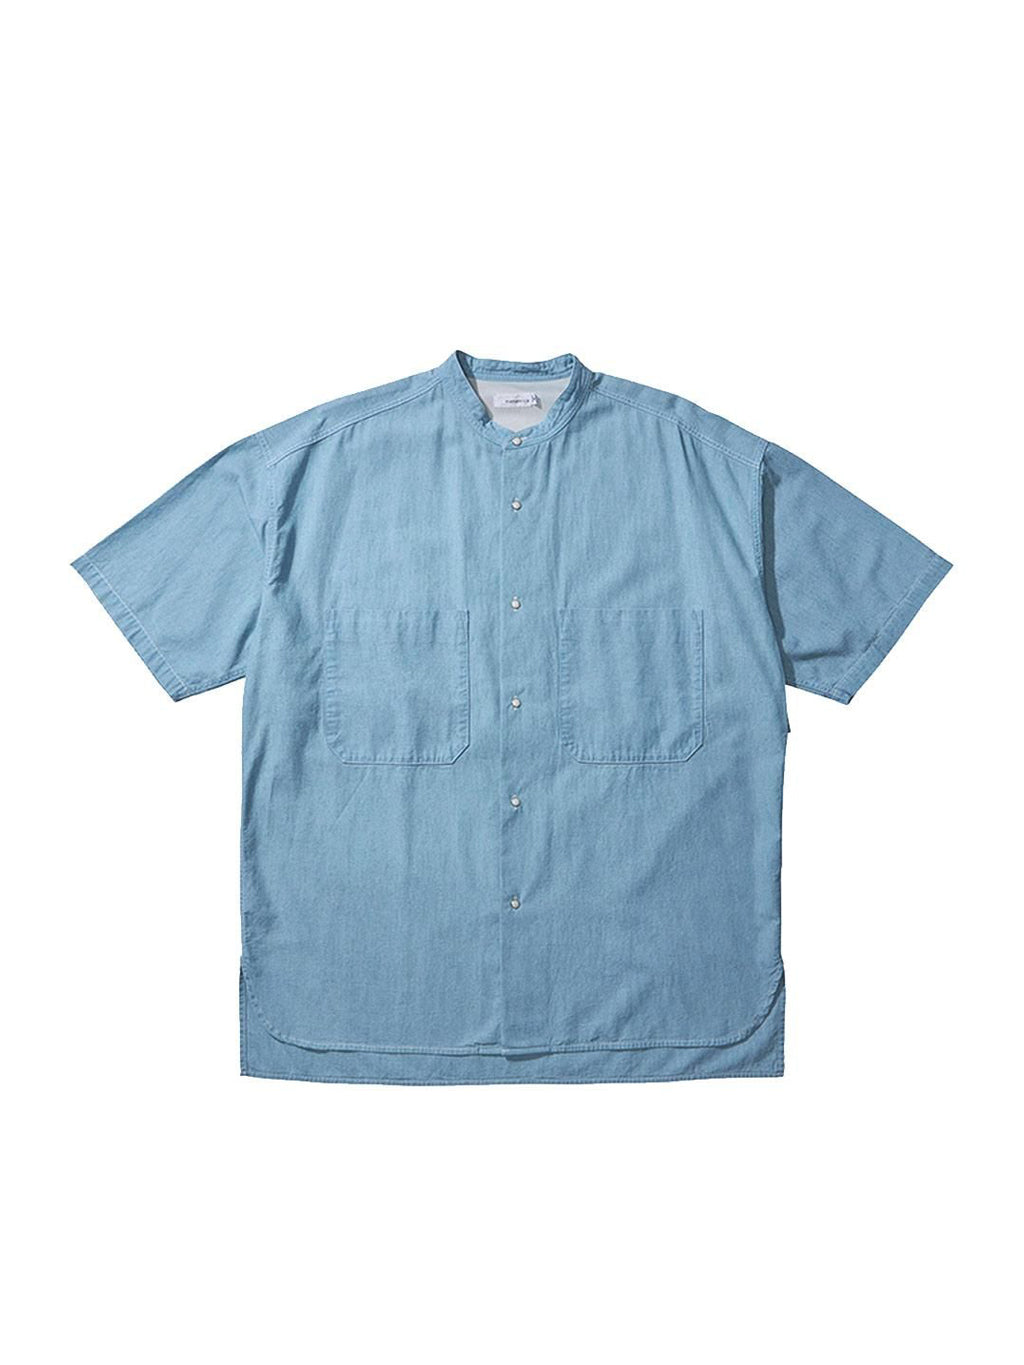 Indigo Big Band Collar Wind Half Sleeve Shirt